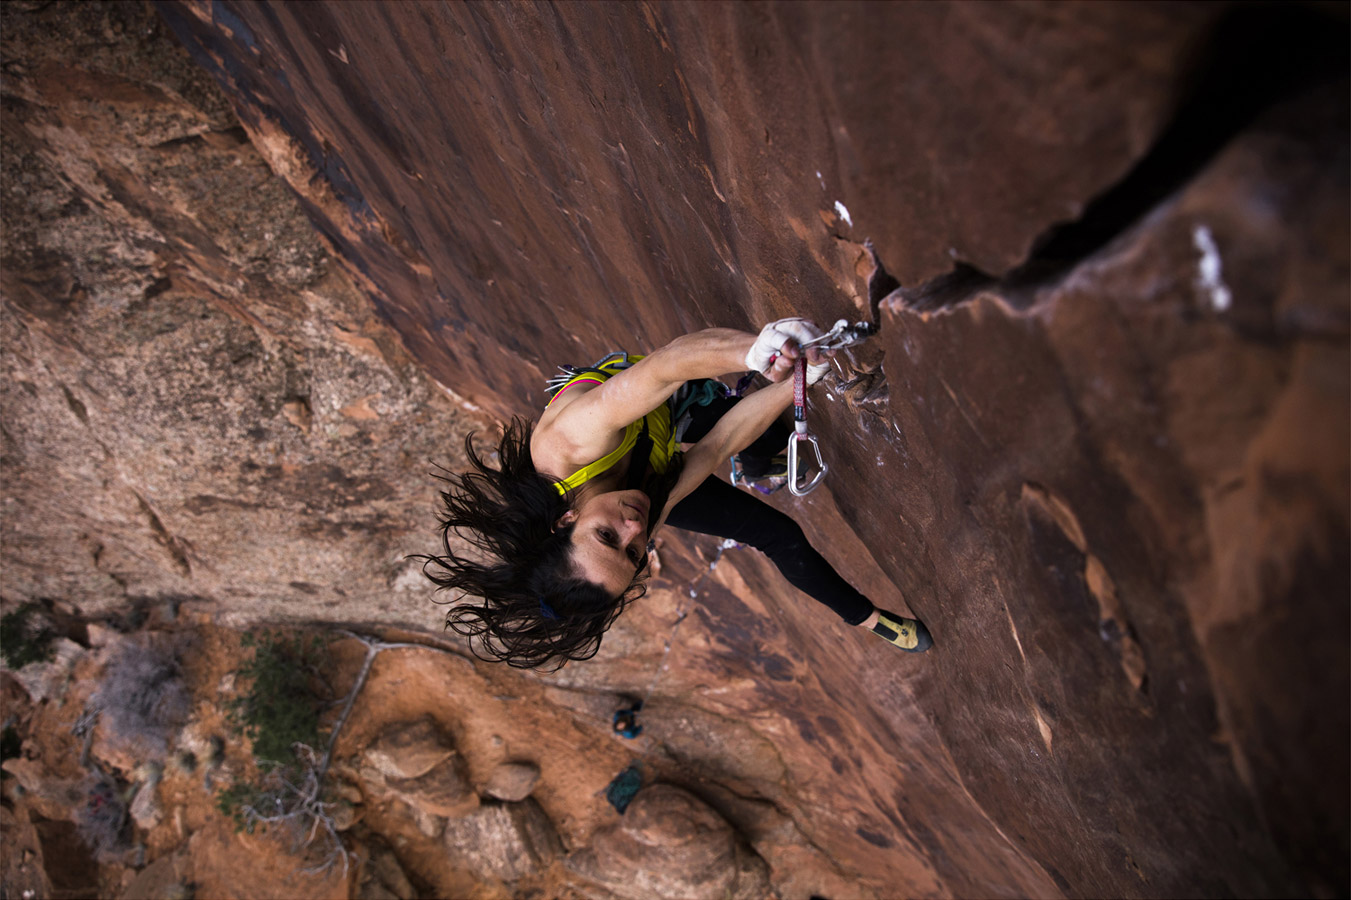 Steph Daves. The Joker 5.12+, © Krystle Wright, CVCEPHOTO Contest